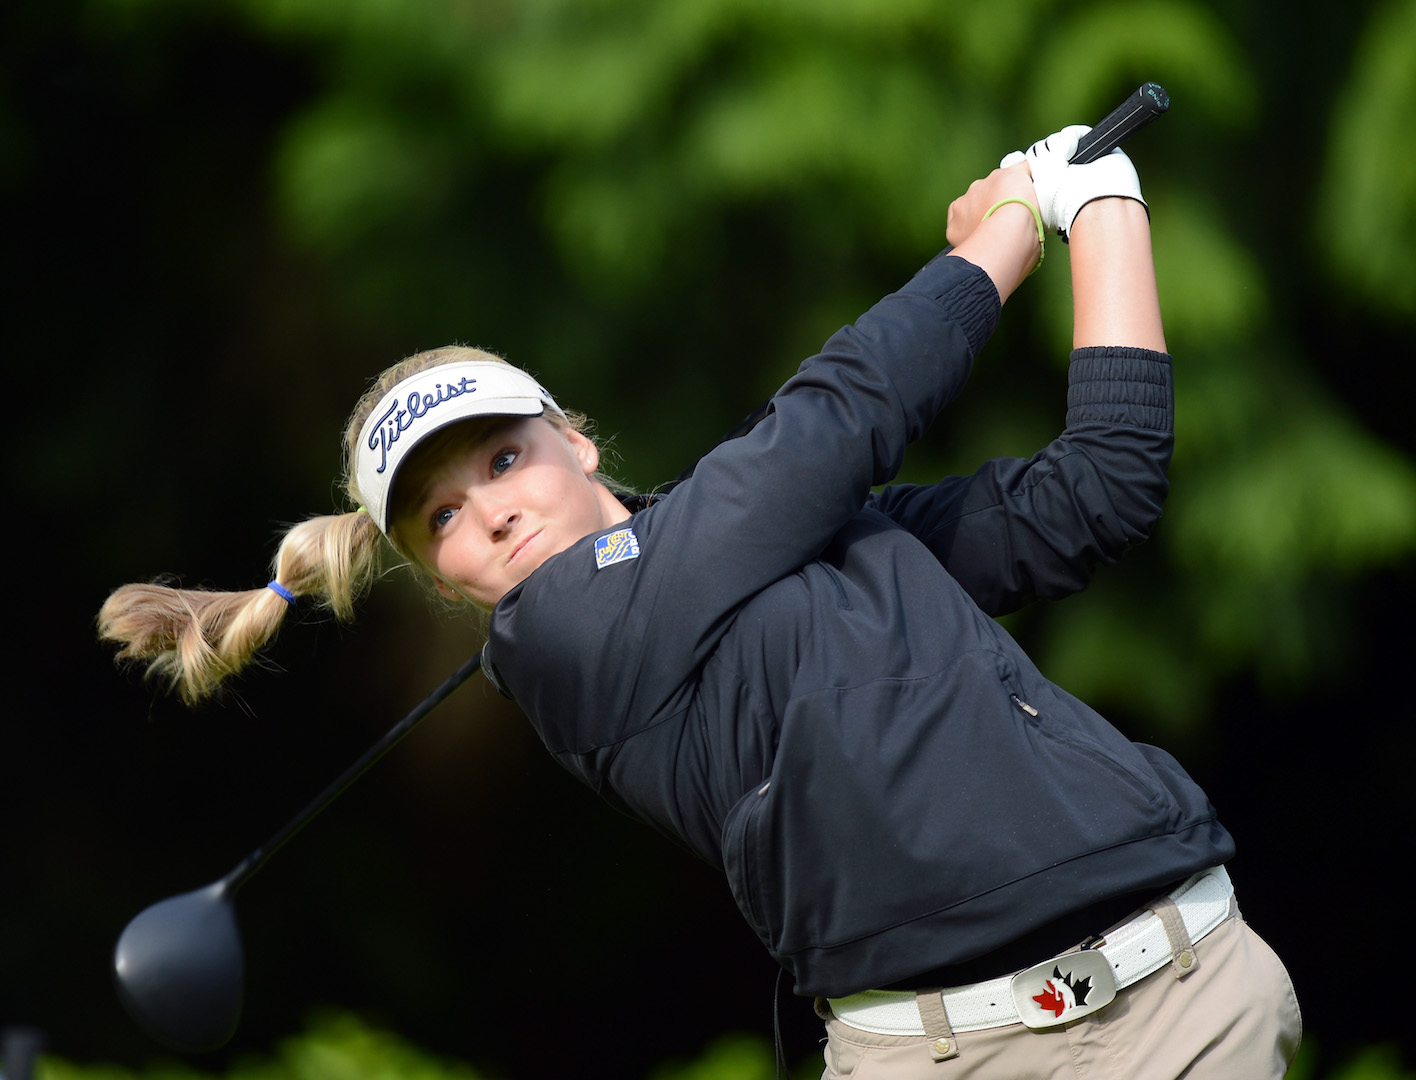 Brooke Henderson: 5 ft 4 inch power house